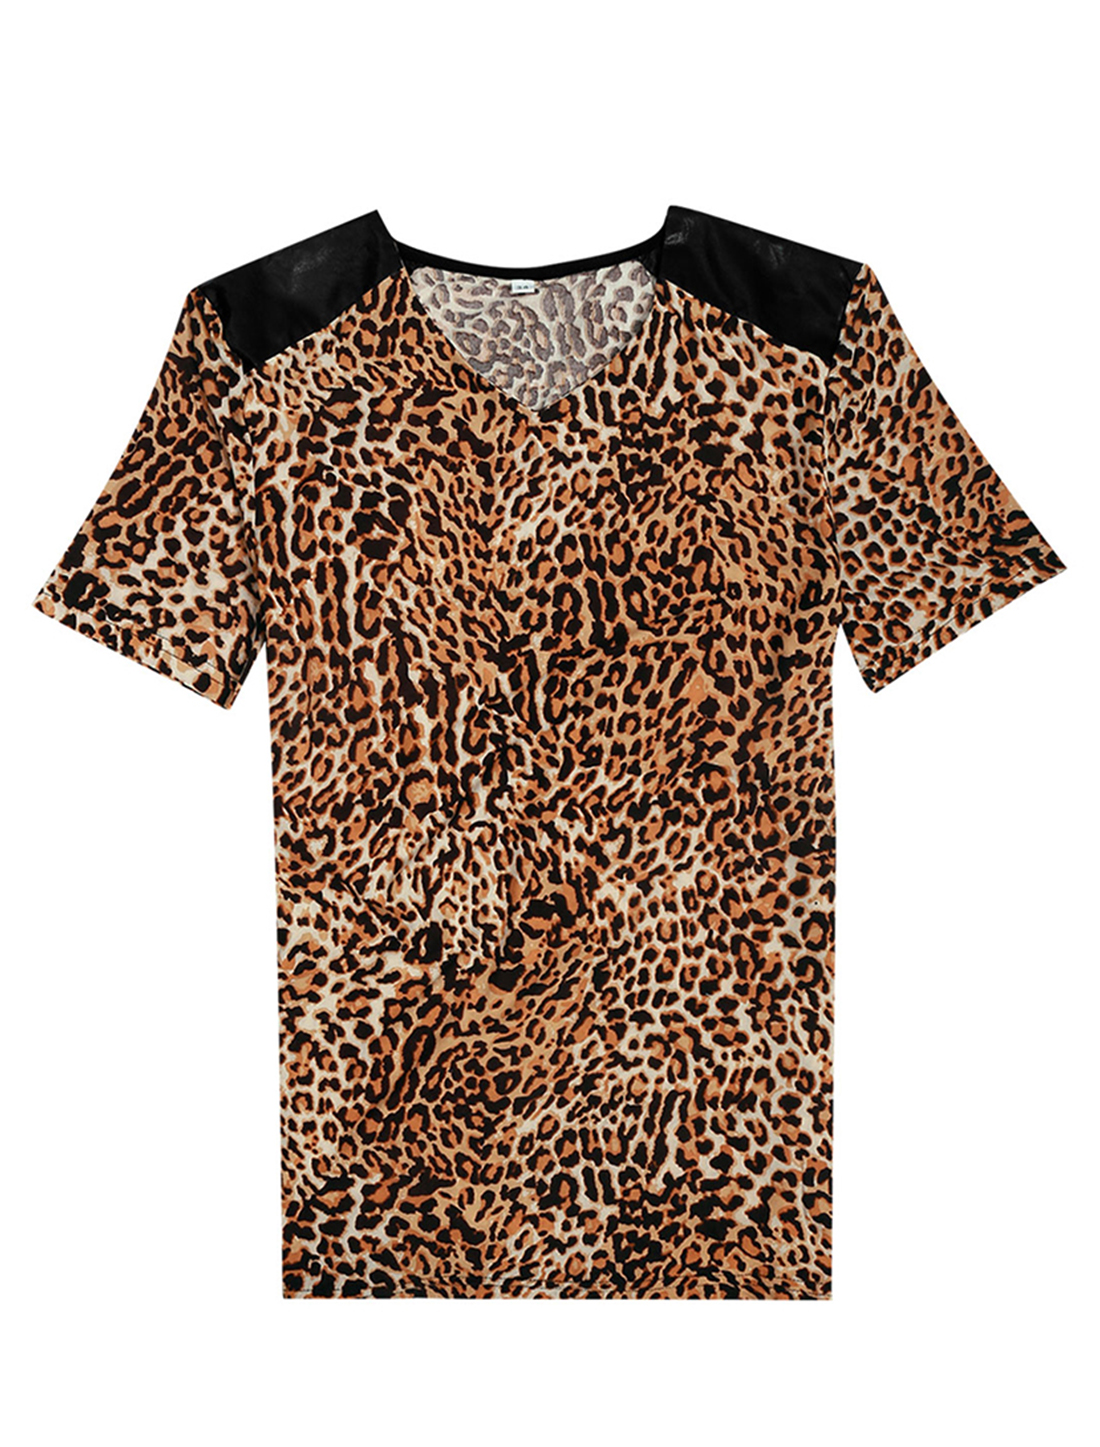 Men Brown Coffee Color V-neck Short Sleeve Leopard Tee Shirt L